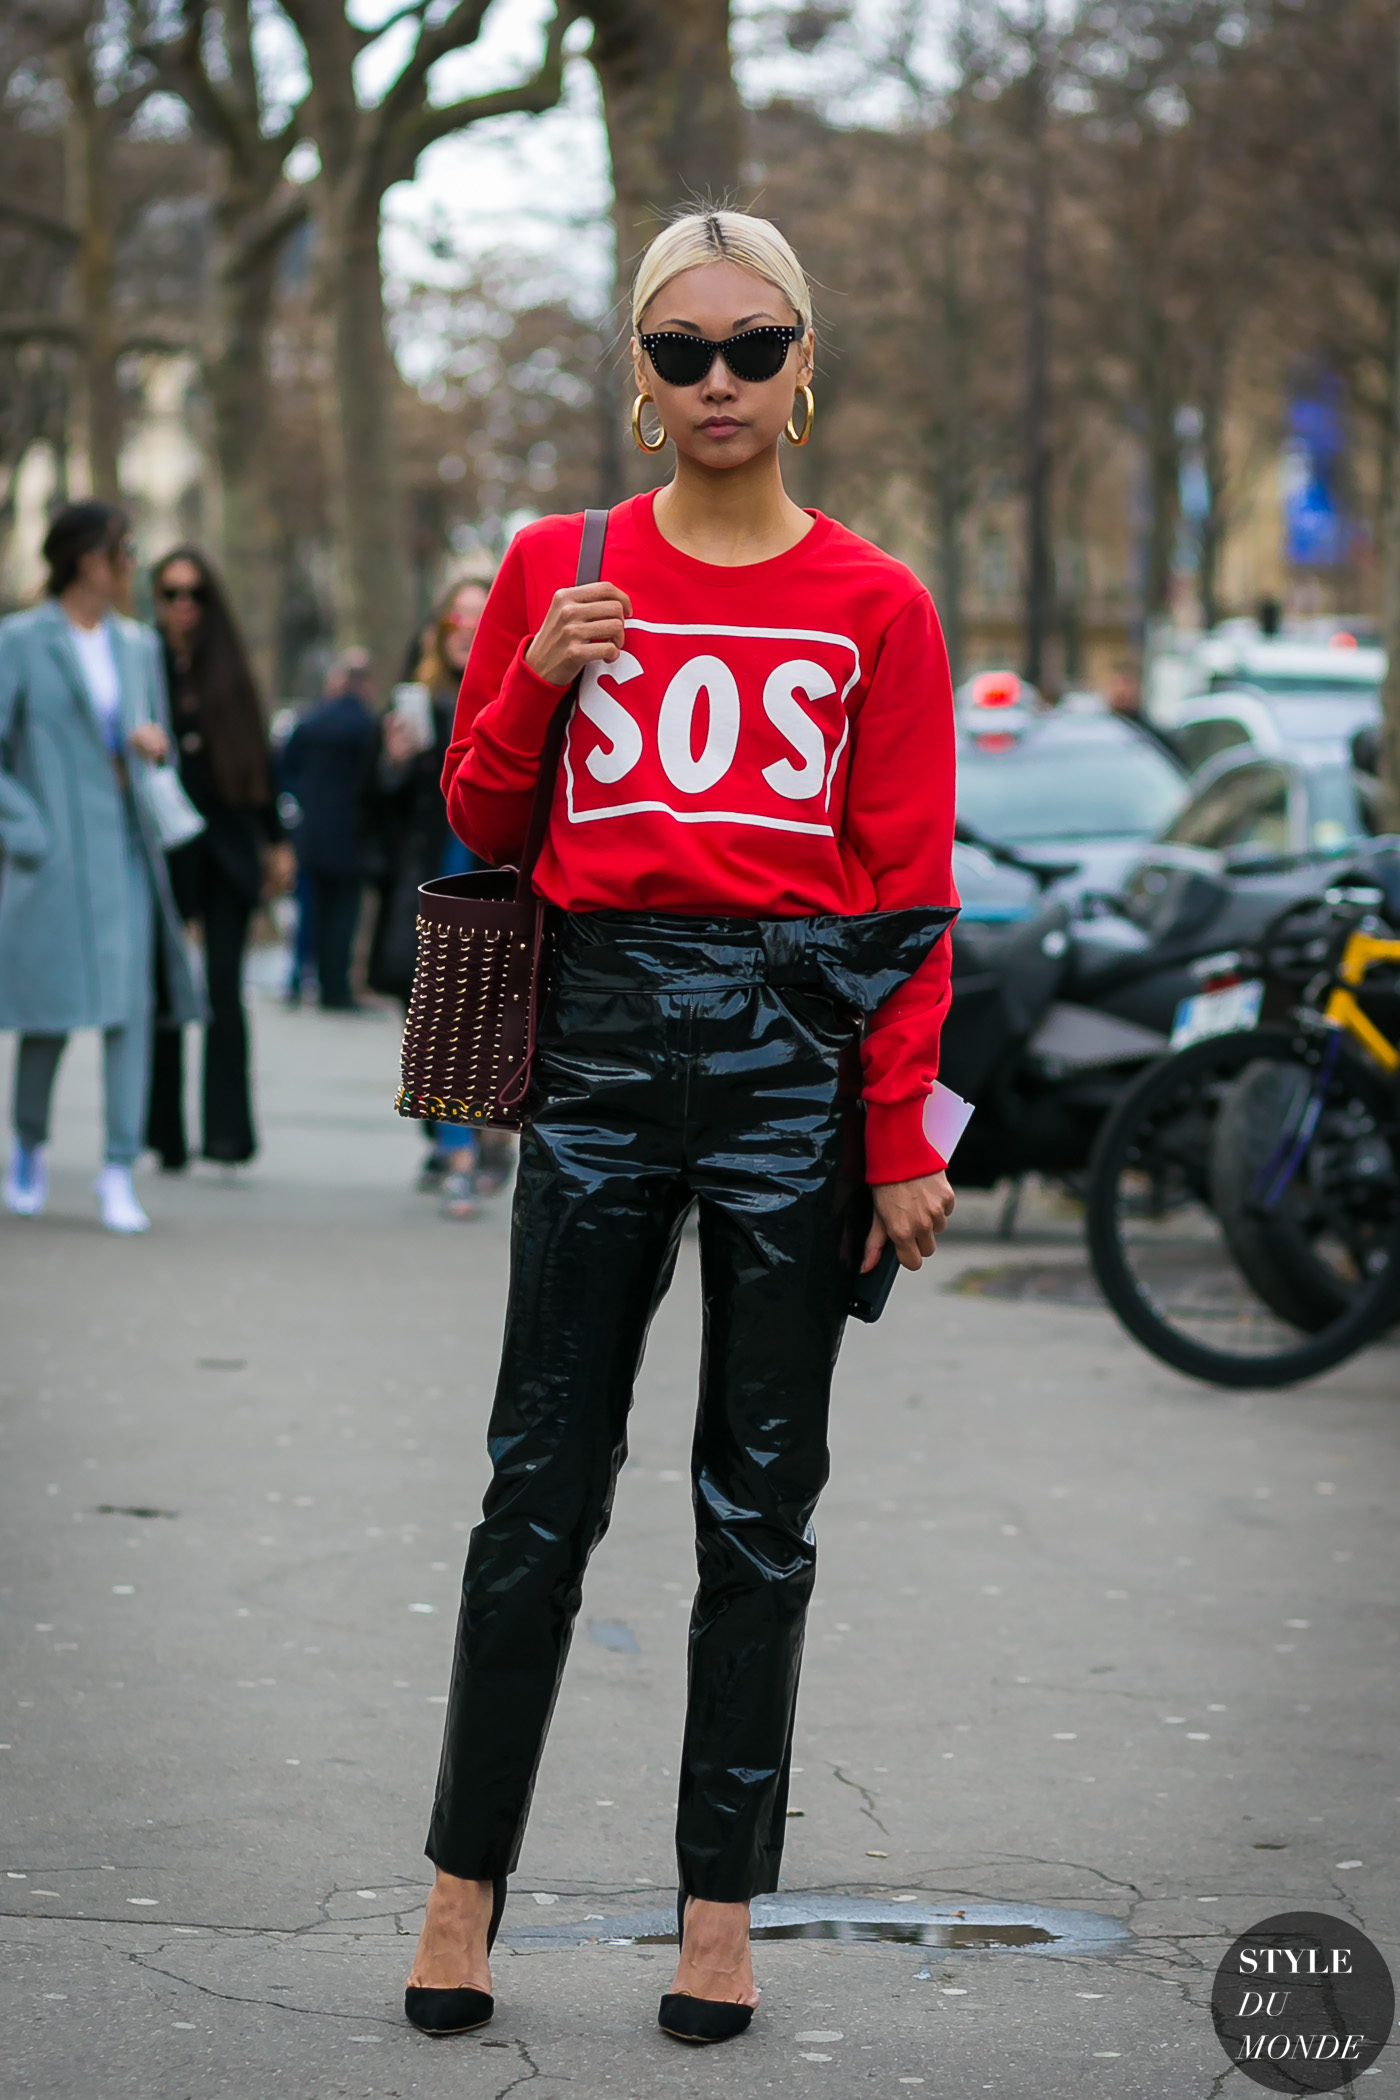 Vanessa Hong by STYLEDUMONDE Street Style Fashion Photography